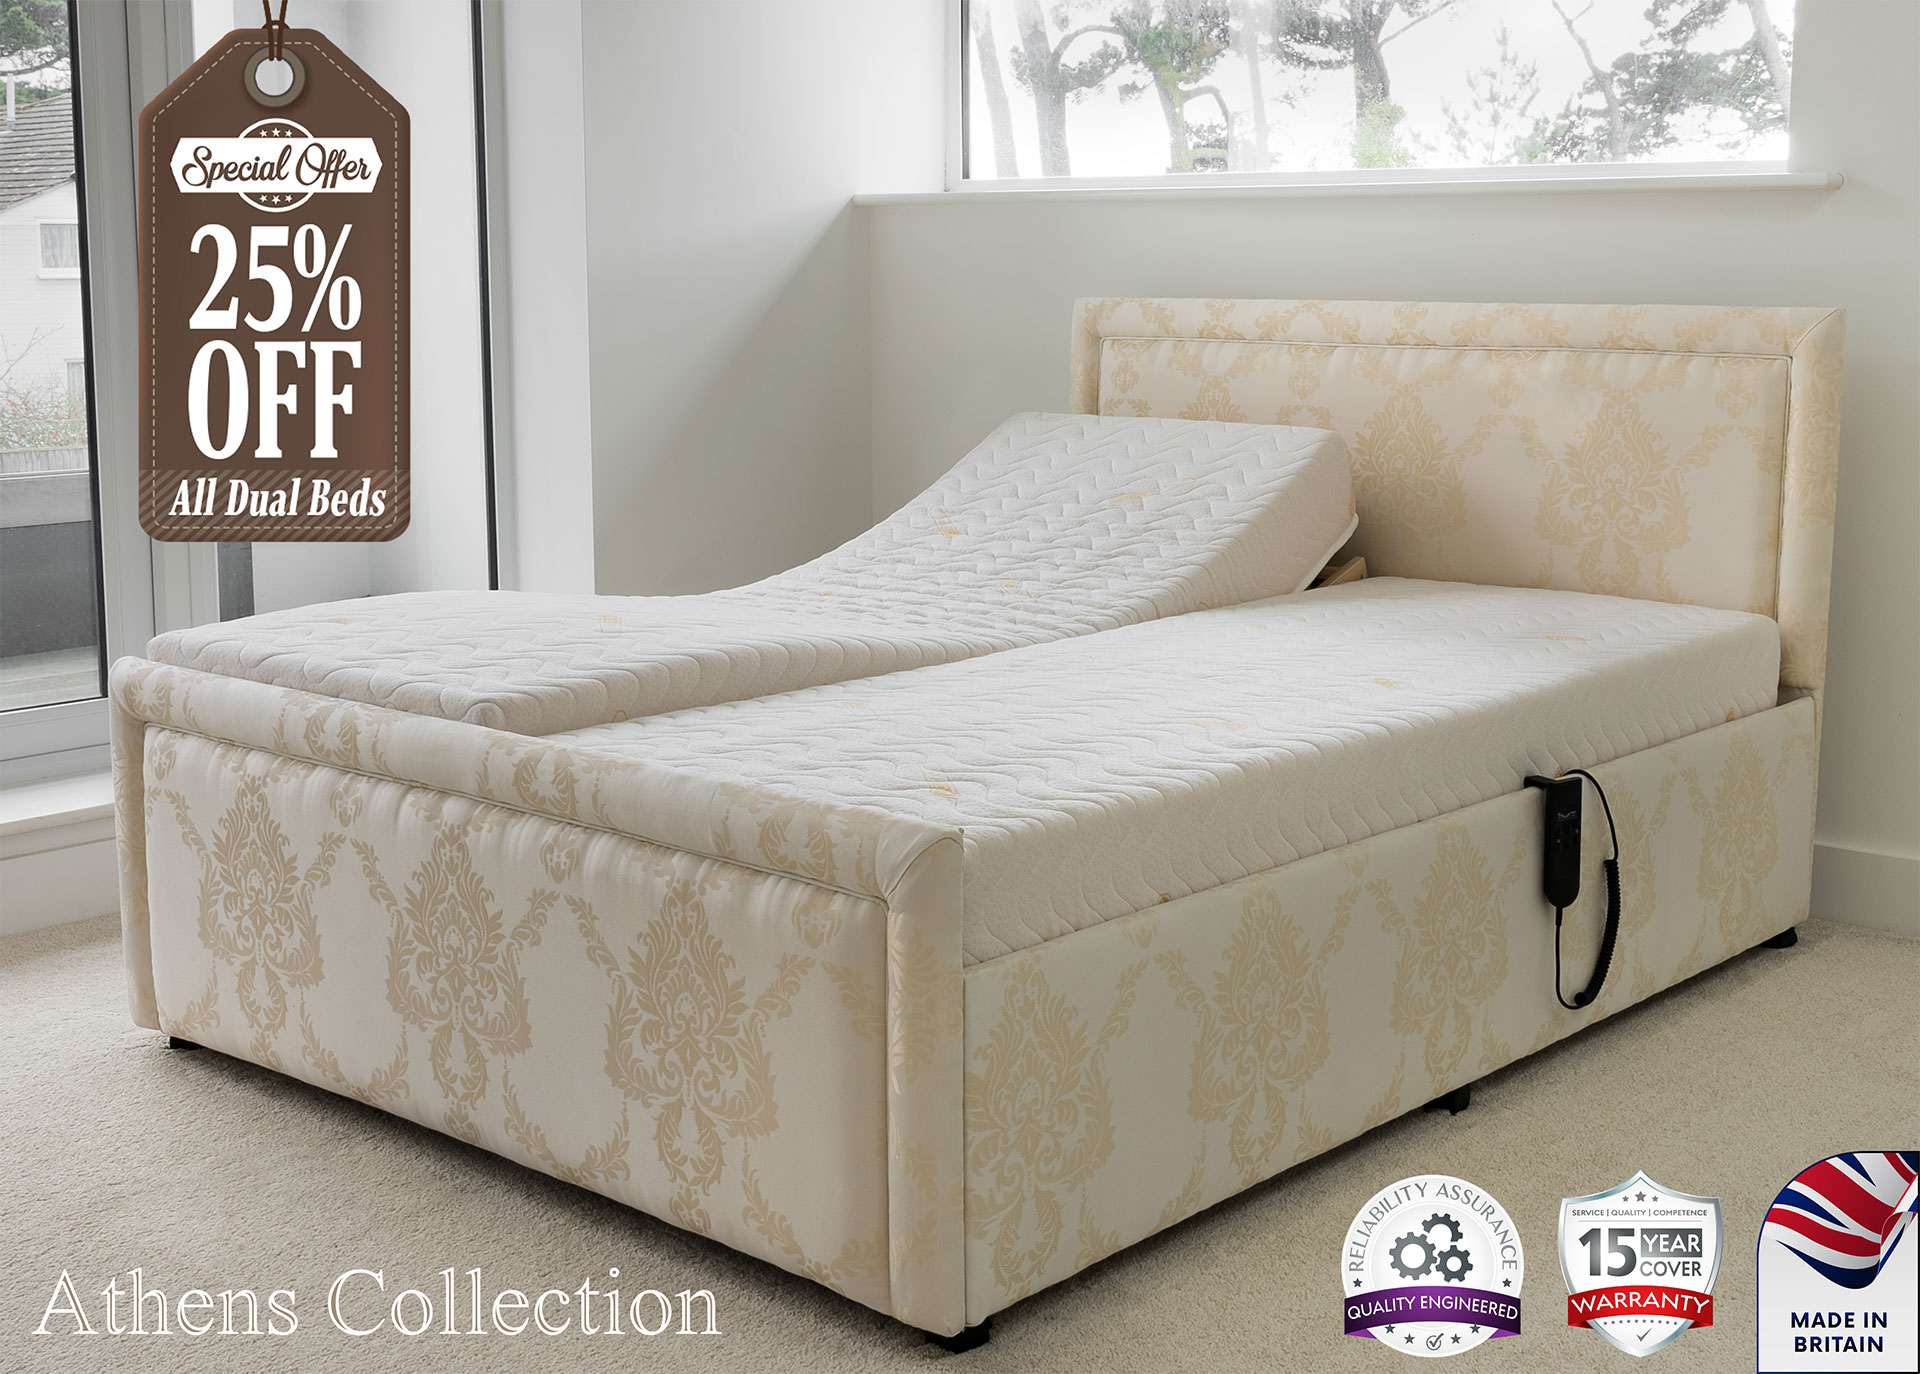 Athena Mobility | Athens Bed Collection